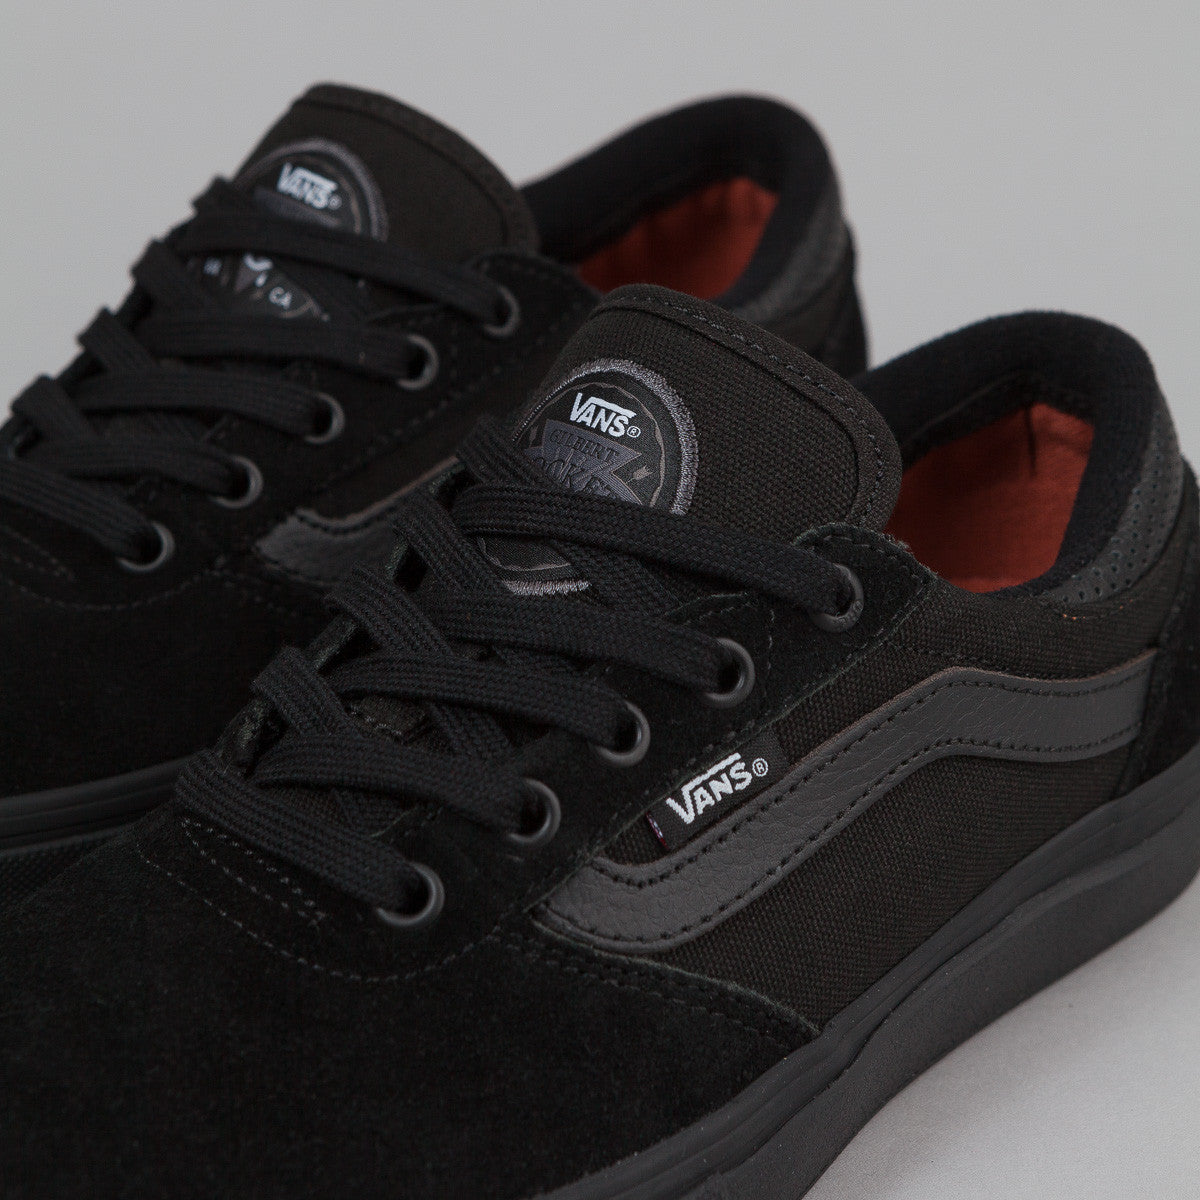 Vans Gilbert Crockett Pro Shoes - Black